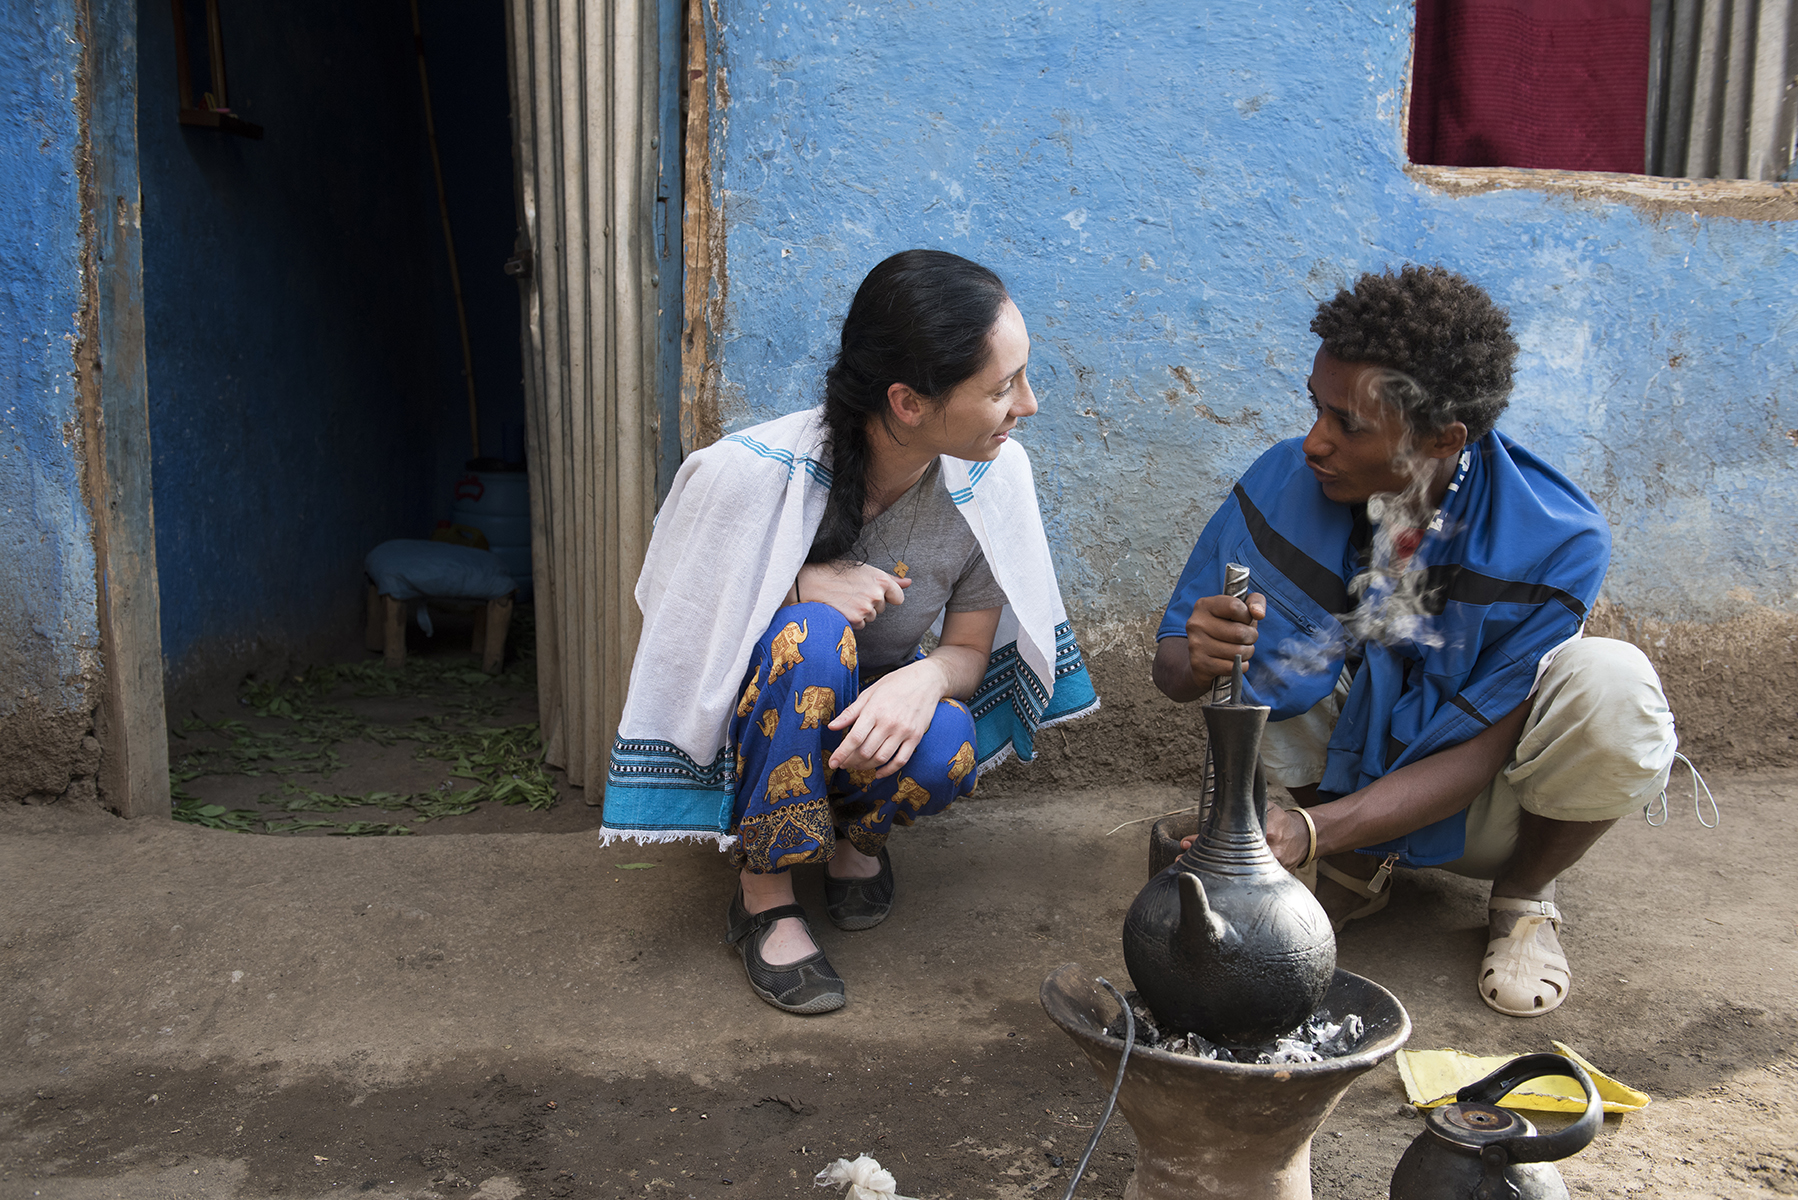 Kat DiBona learns to grind coffee by hand and brew it over coals during a coffee ceremony, a common part of Ethiopian culture, at a traditional home in Lalibela, Ethiopia.